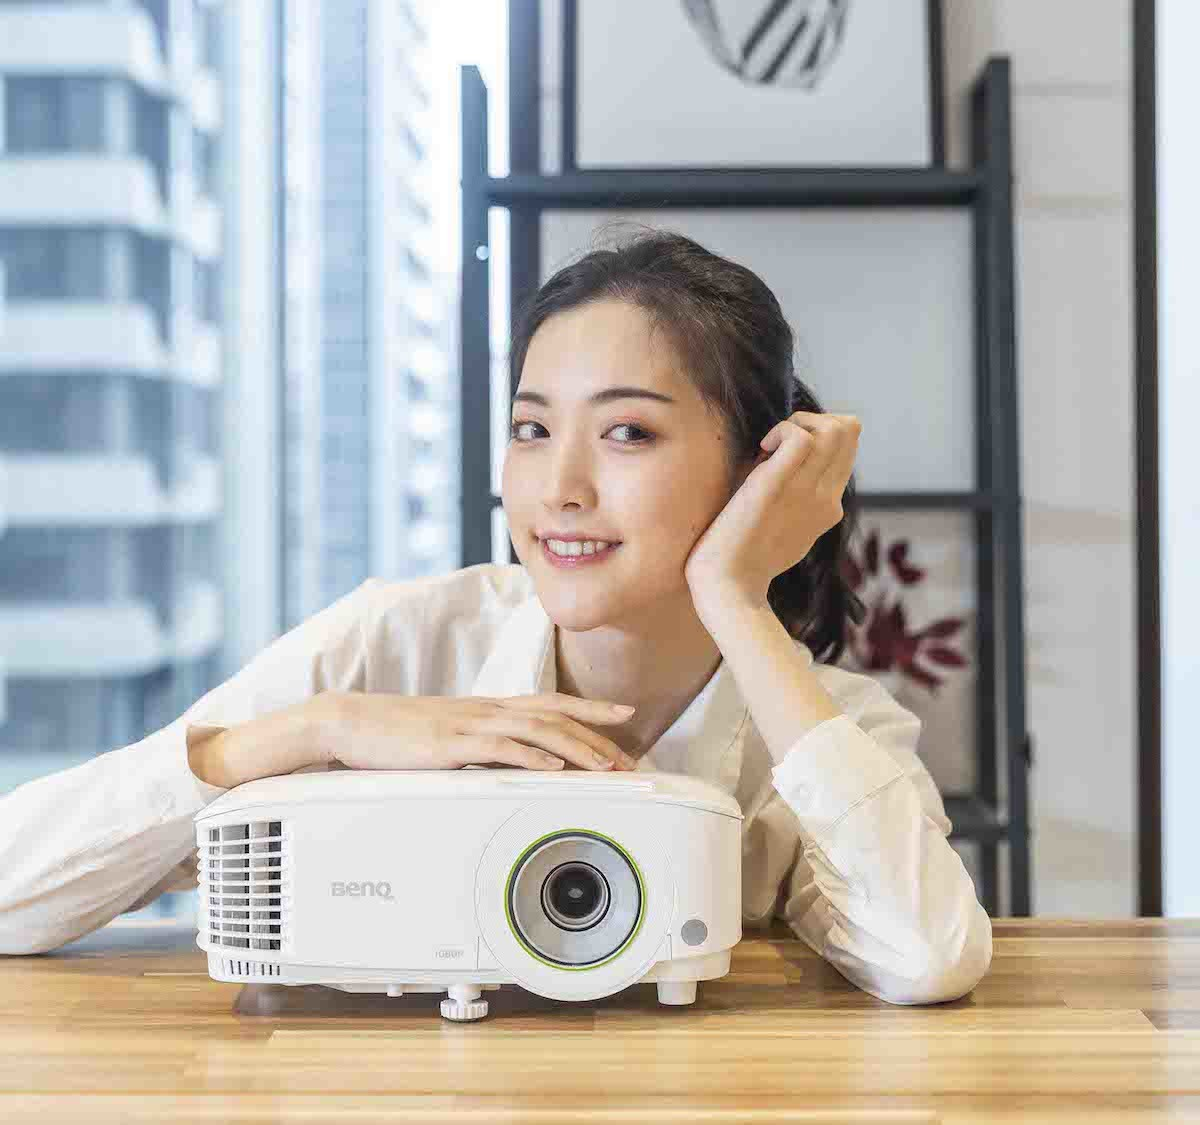 BenQ EH600 wireless smart projector lets you project cord-free from your device